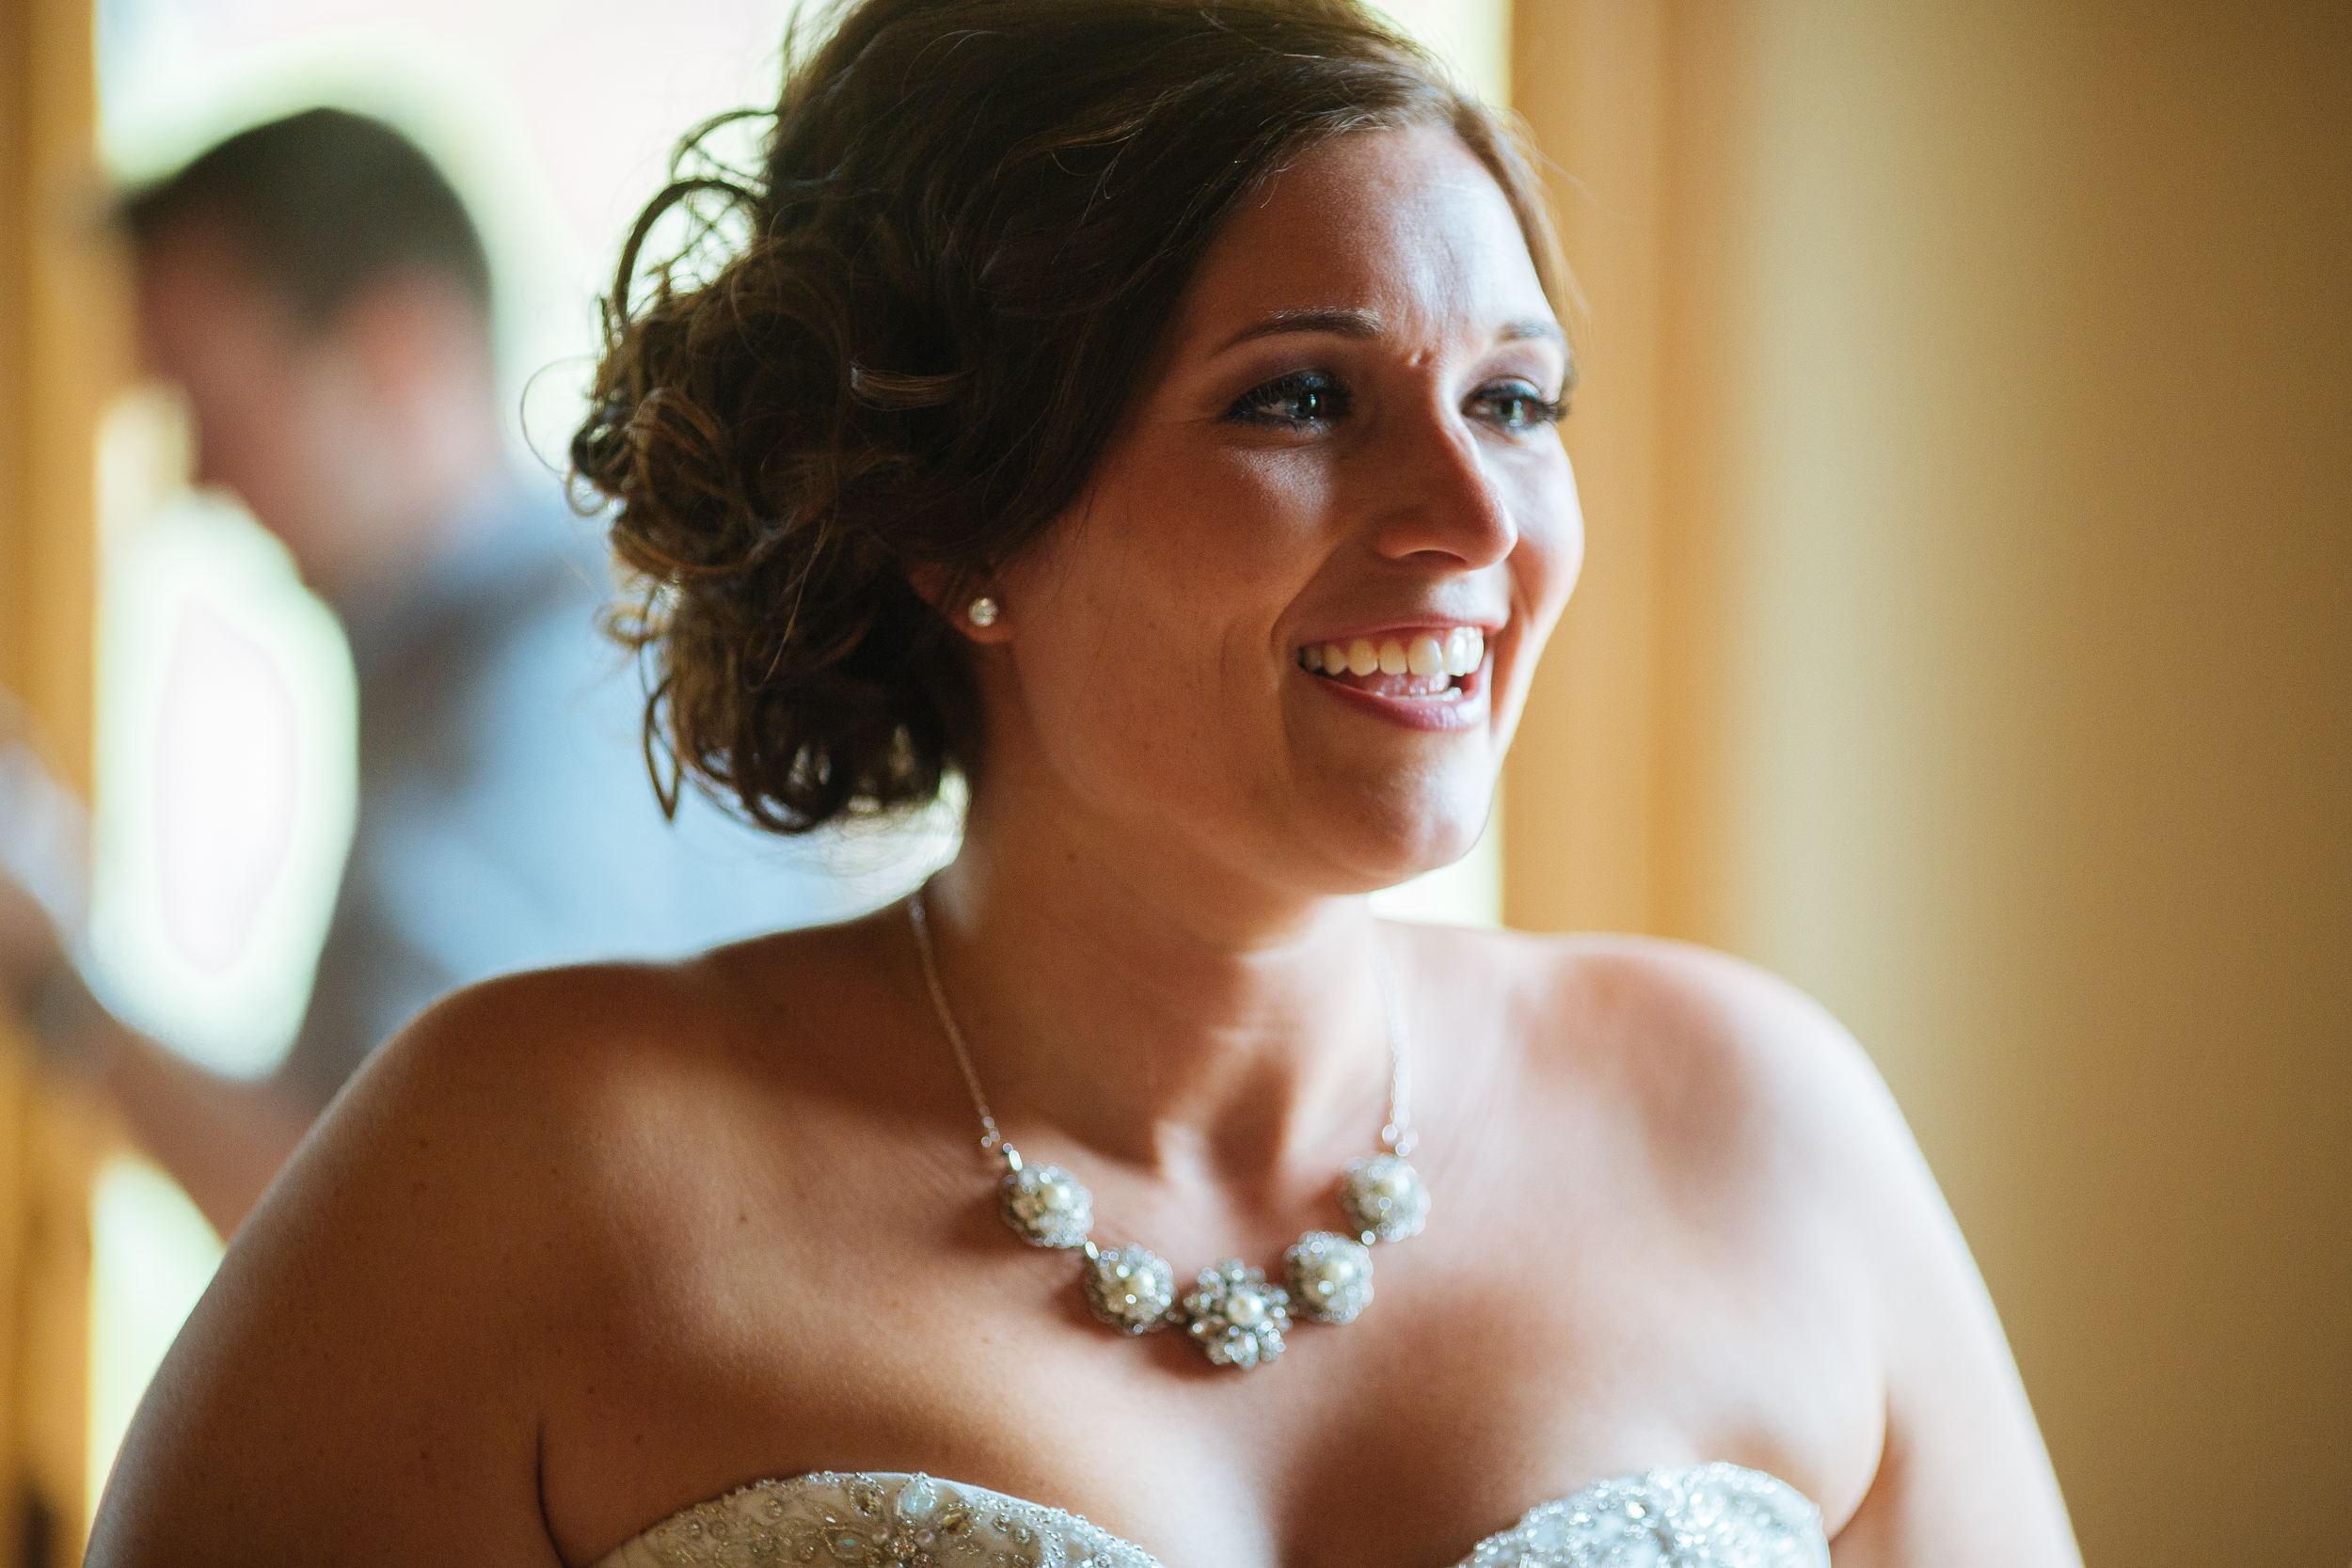 Alyssa Lee Photography | Bride getting ready, anticipation | Sixpence Standard Blog